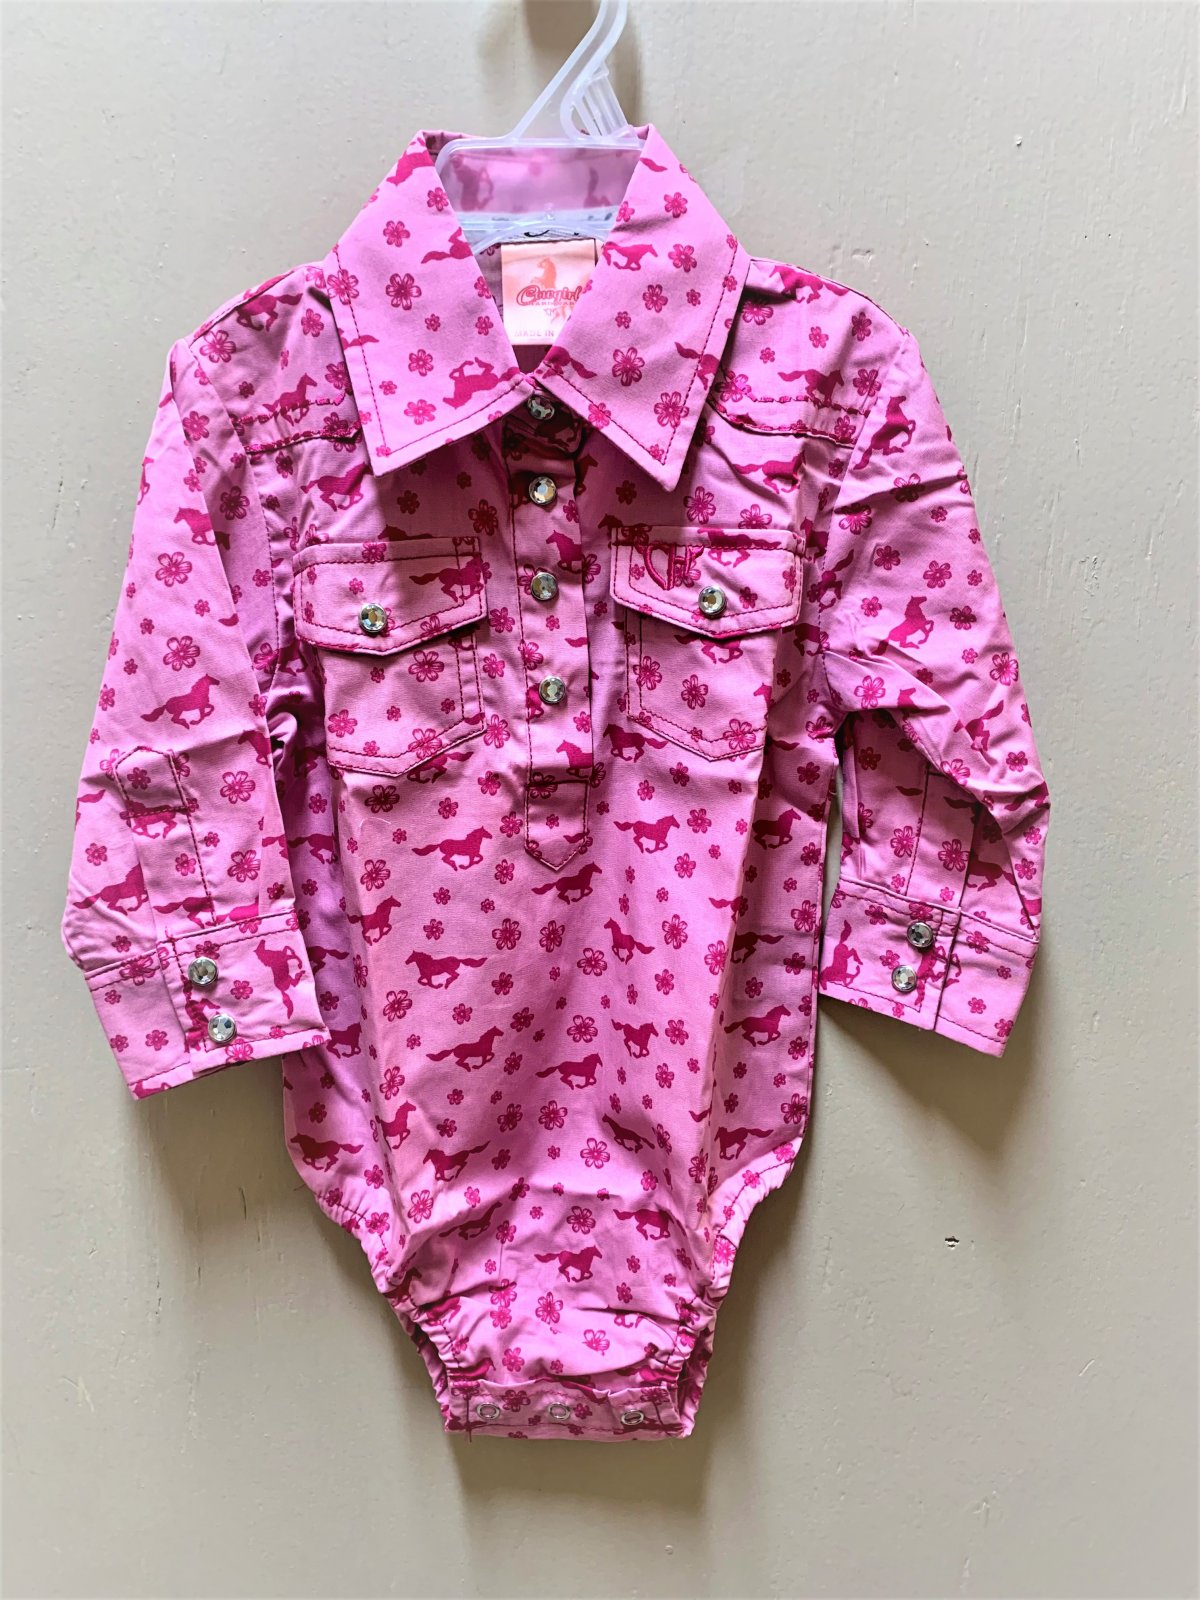 Cowgirl Hardware Infant Daisy Rider LS Romper Pink 0721